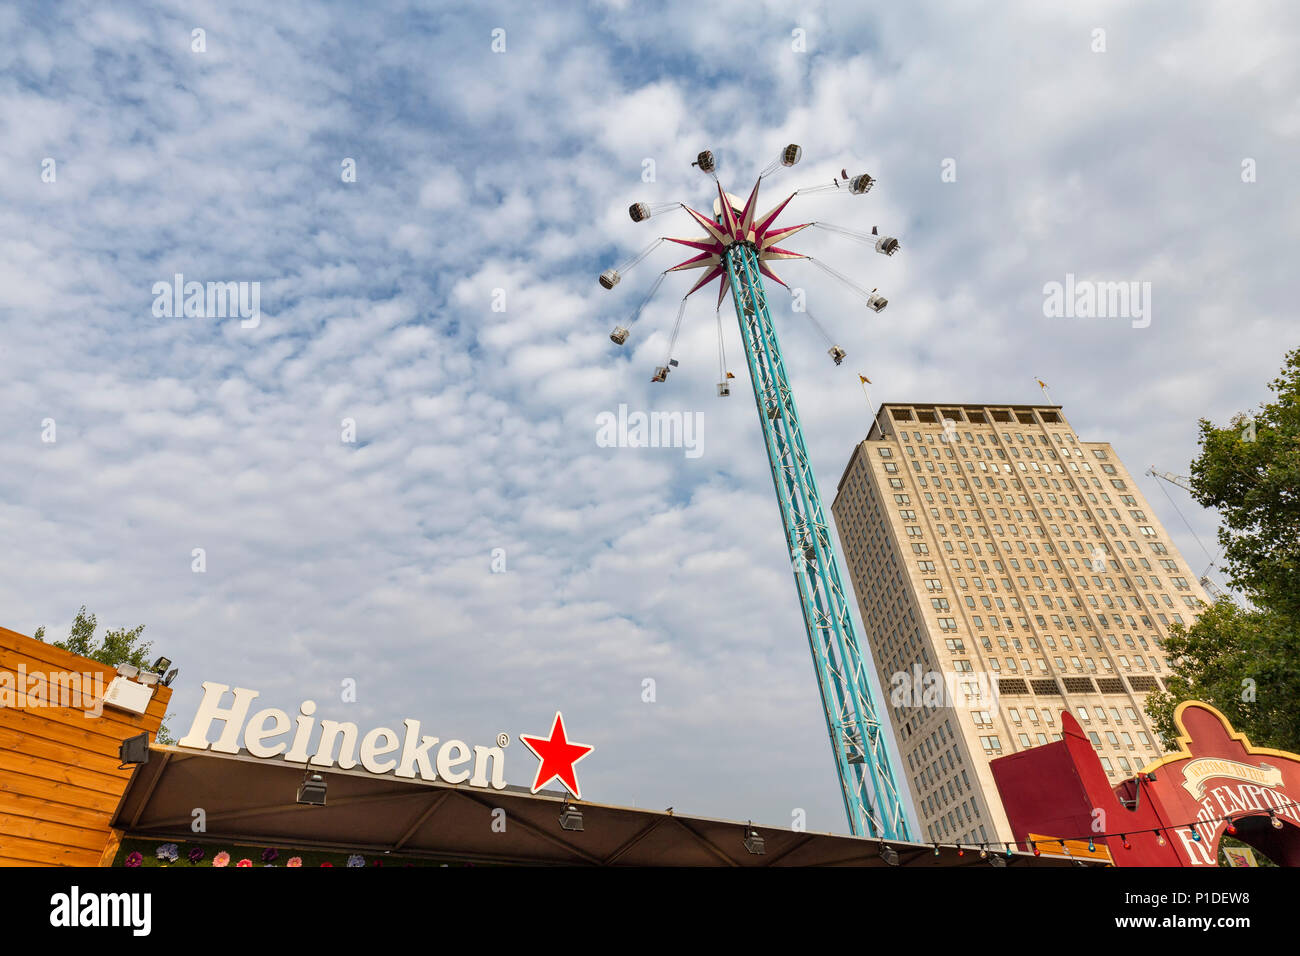 LONDON, ENGLAND - AUGUST 18: The Star Flyer ride in London, England on August 18, 2016. Stock Photo